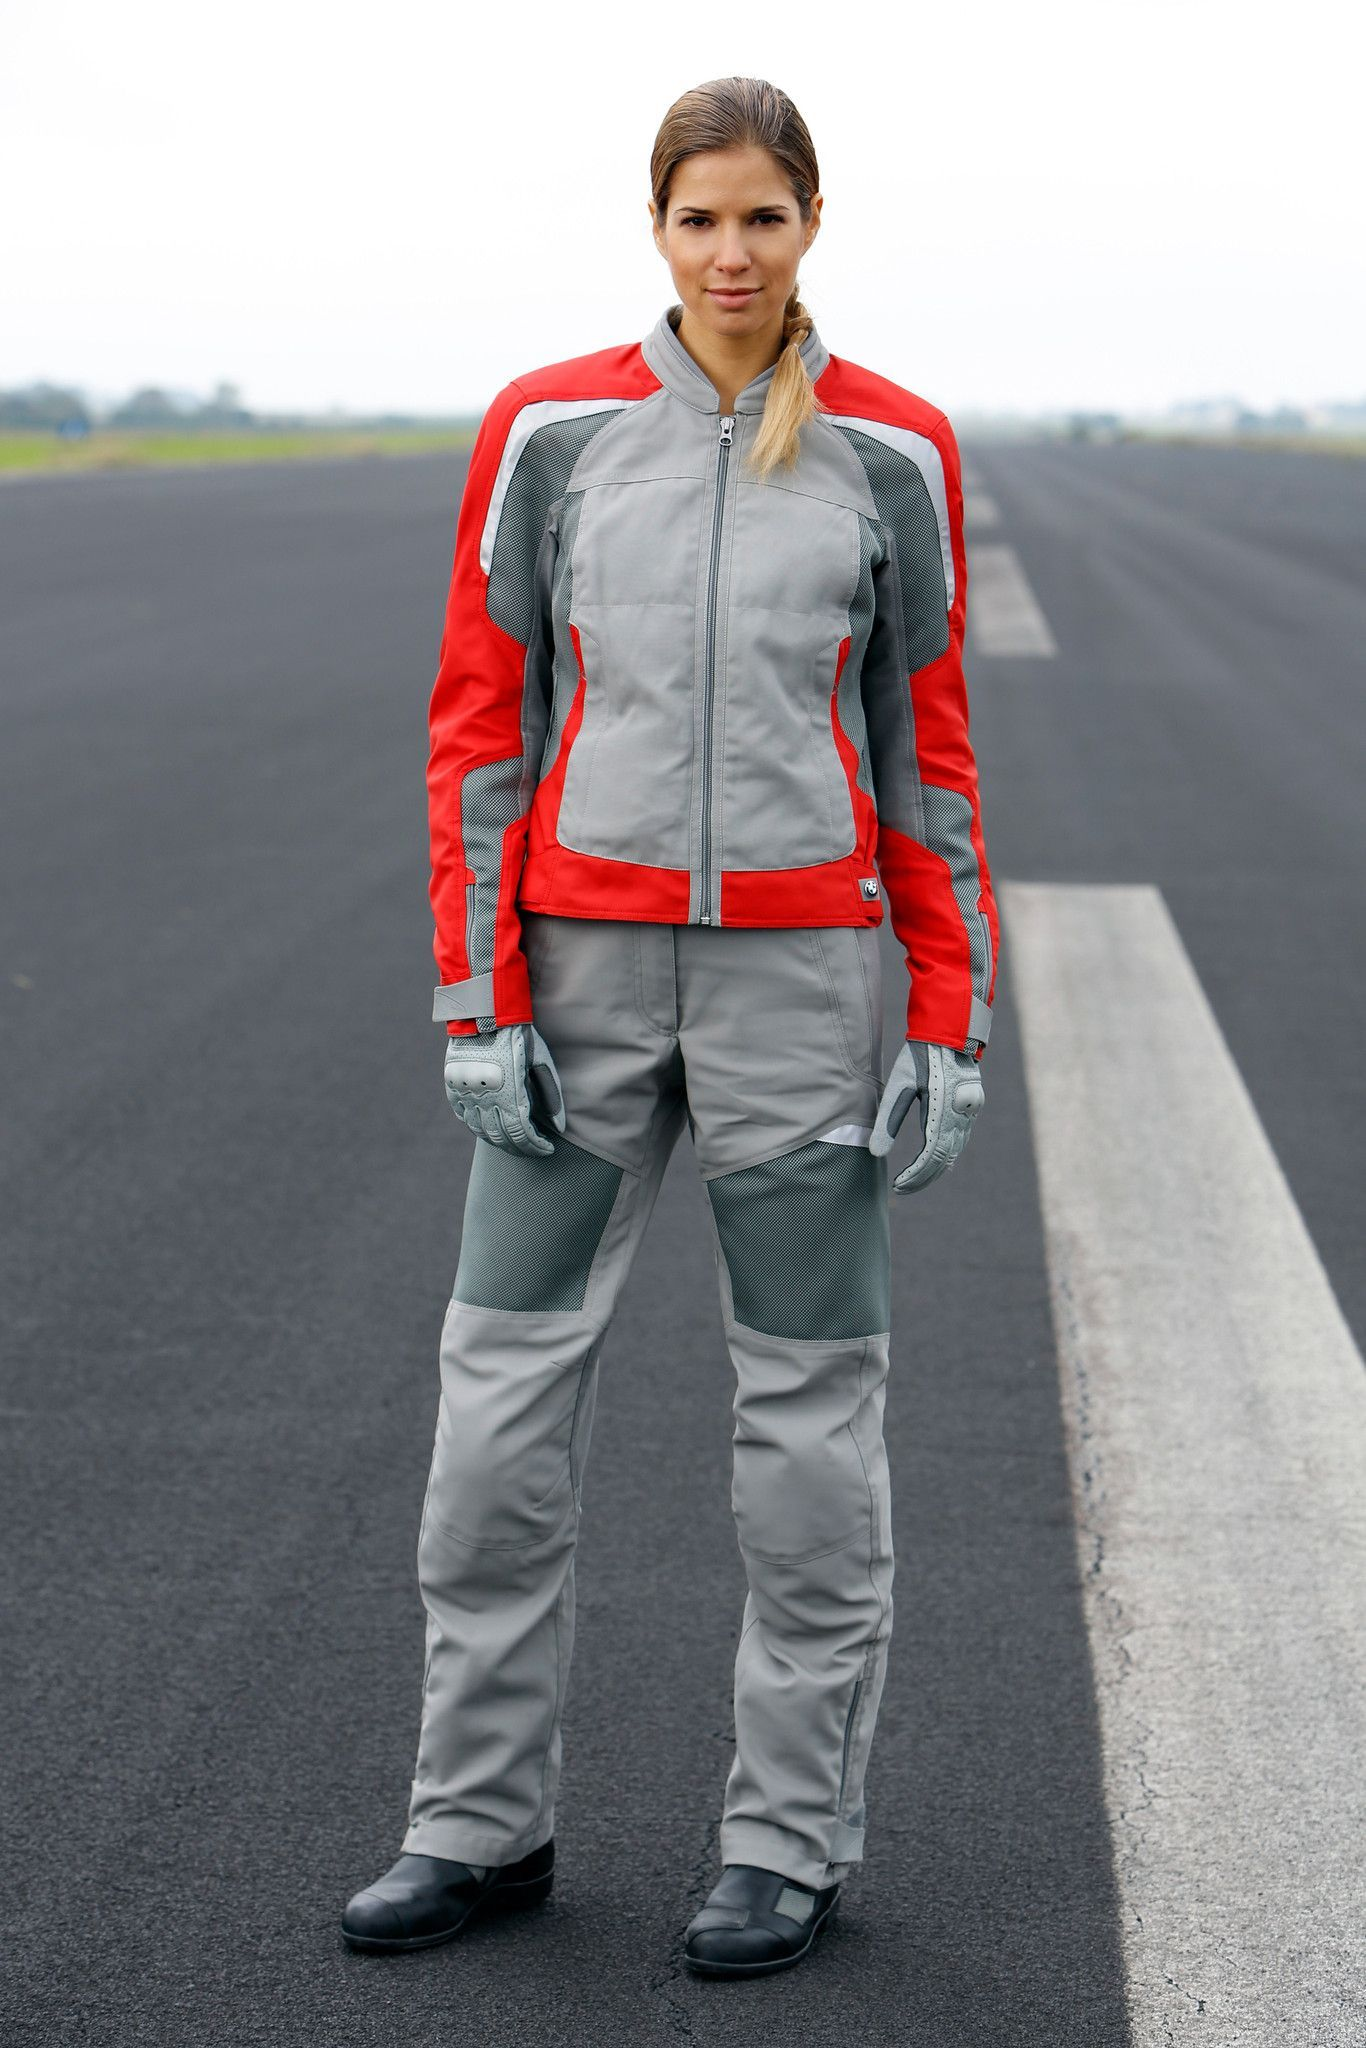 BMW Womens AirFlow Suit Red, Cover Jacket | Motociclismo y ...